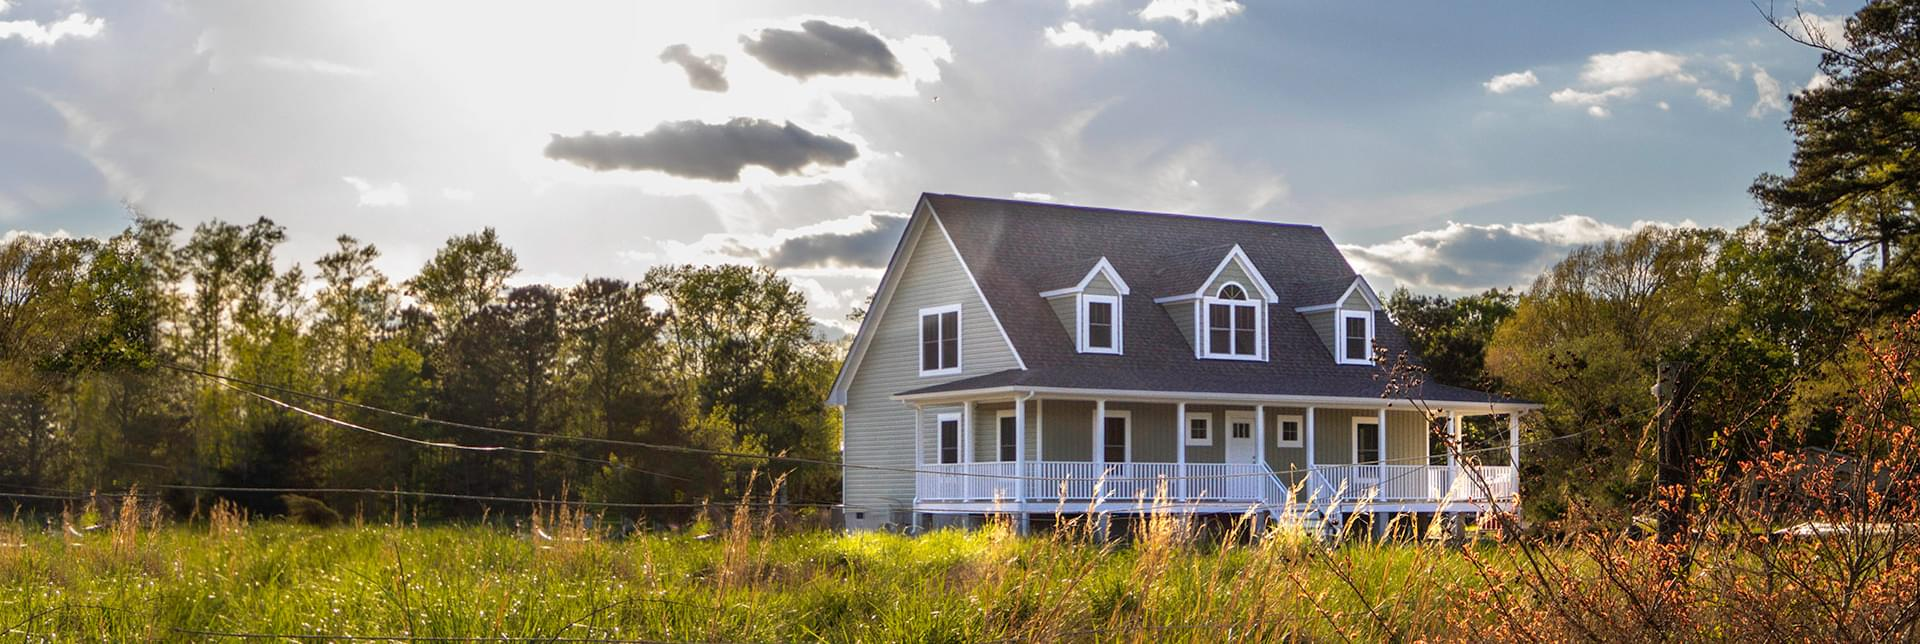 New Homes in Campbell County VA